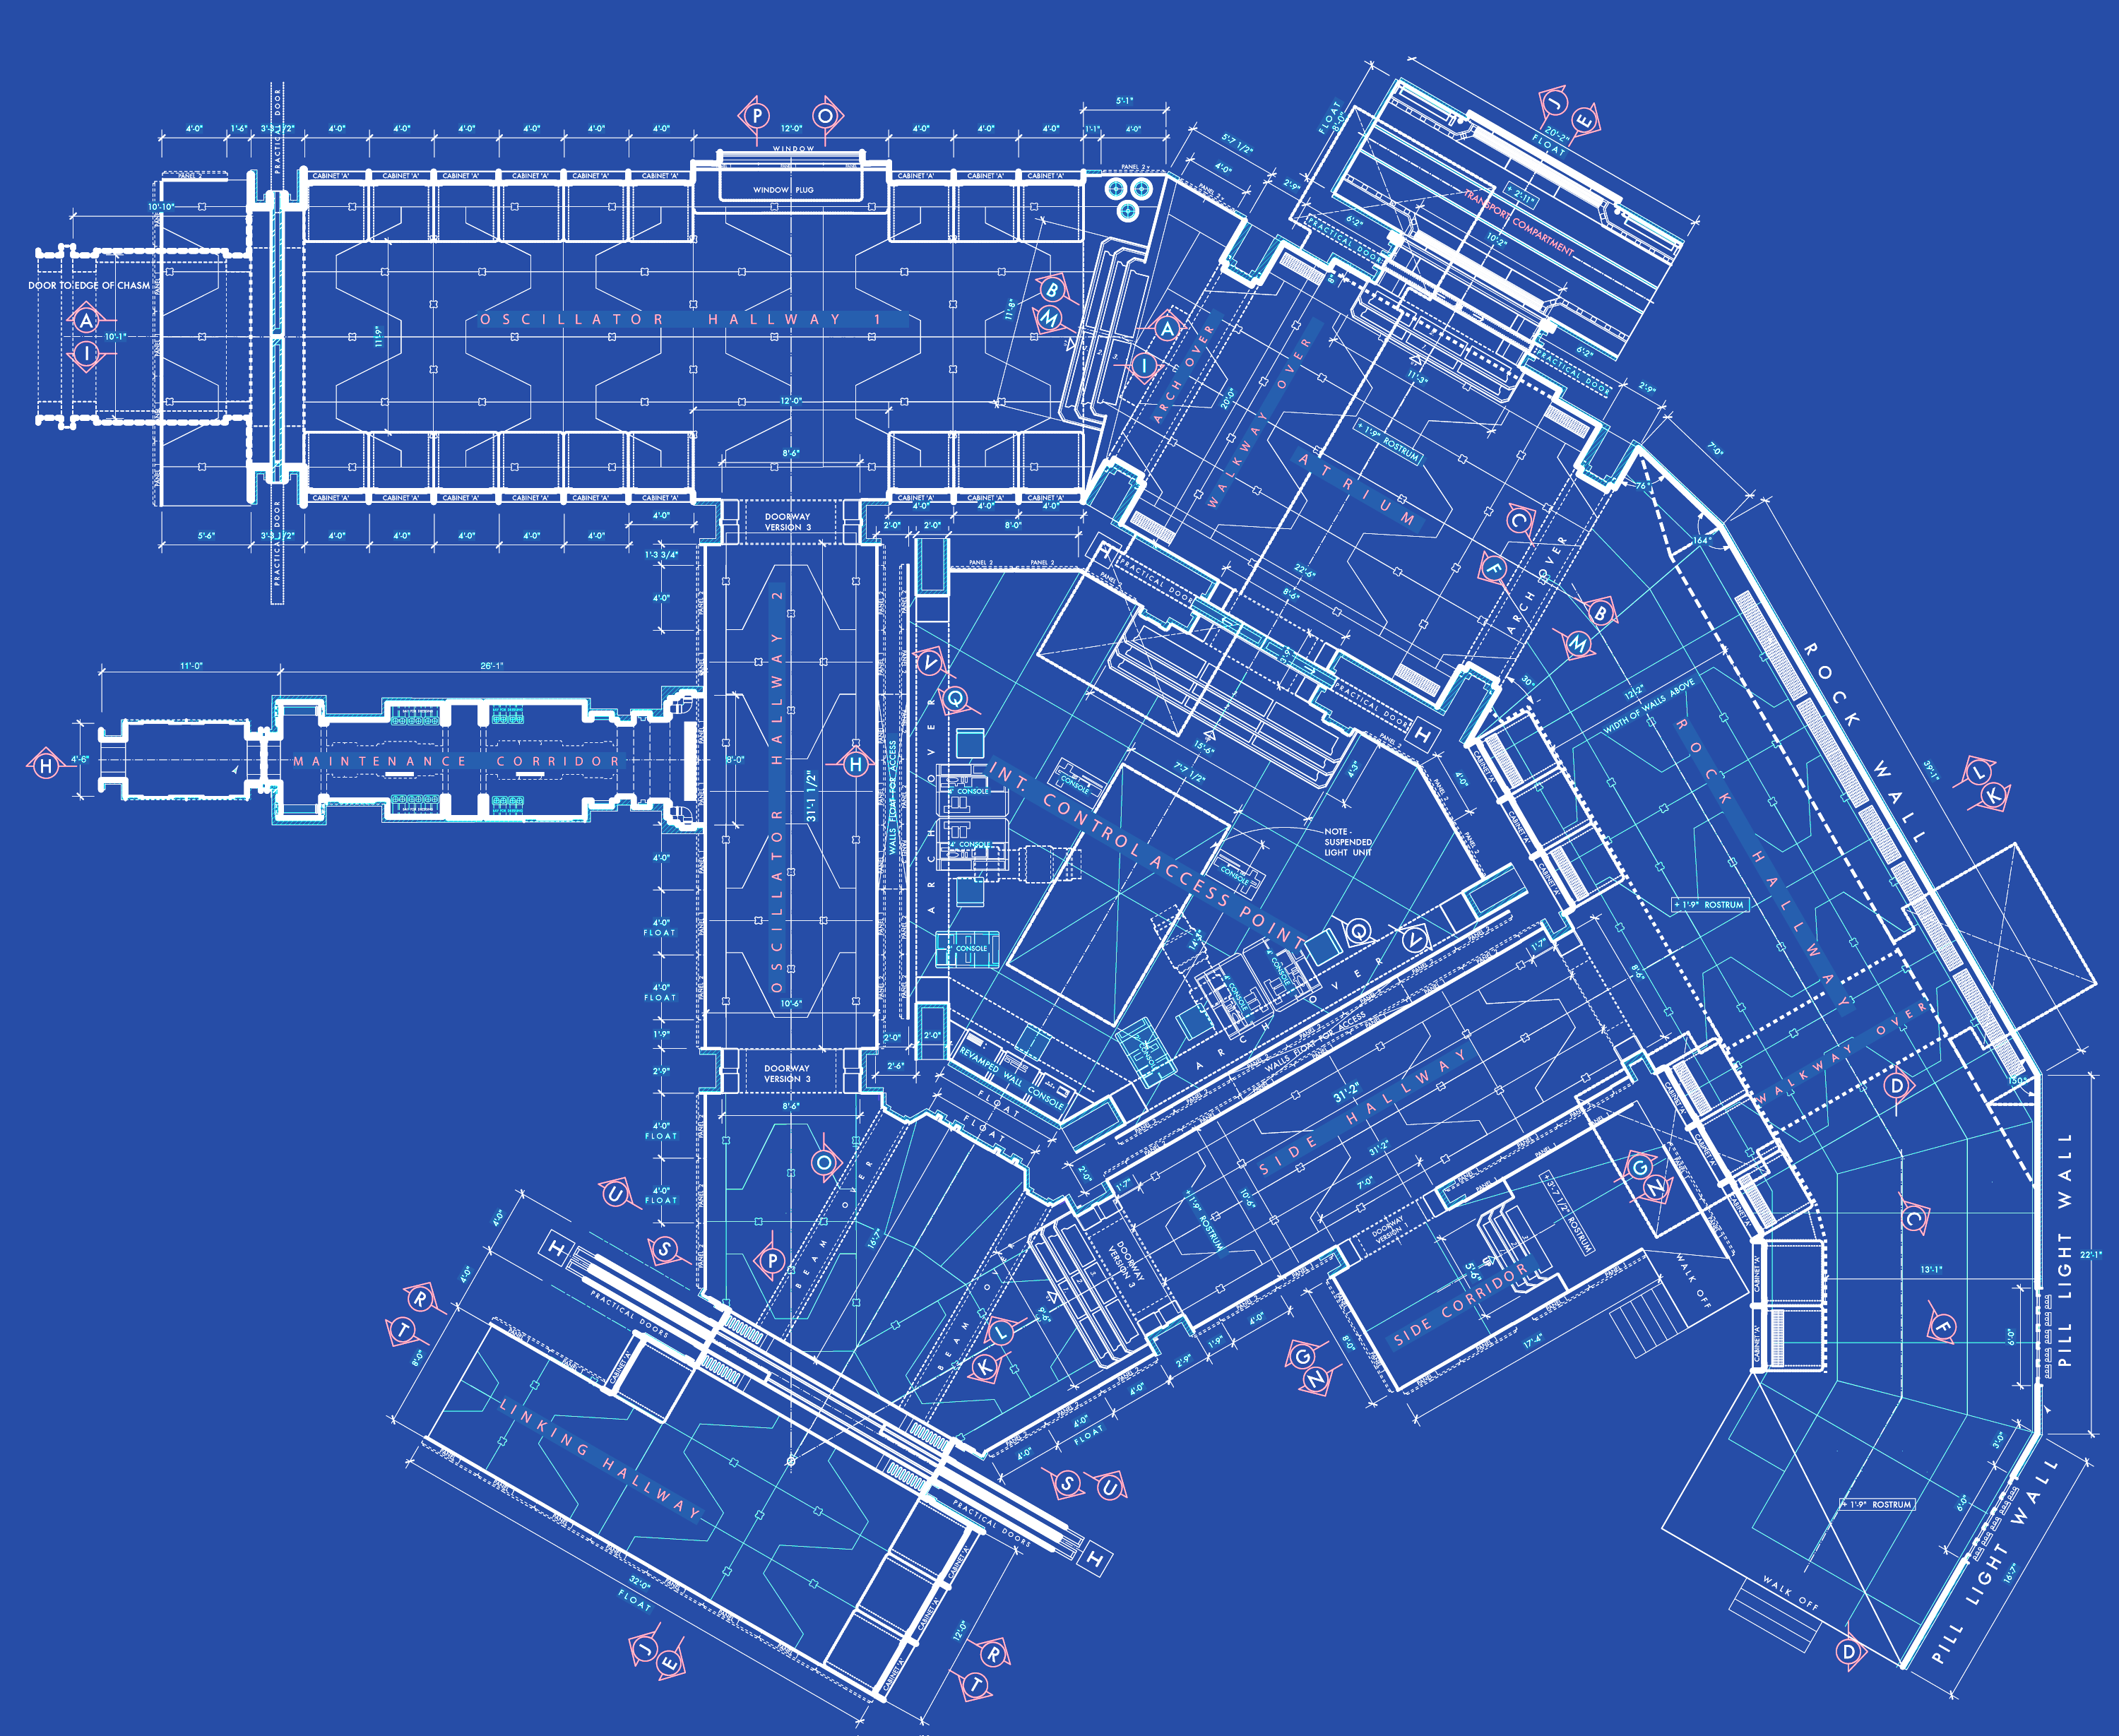 star wars the force awakens blueprints of starkiller base